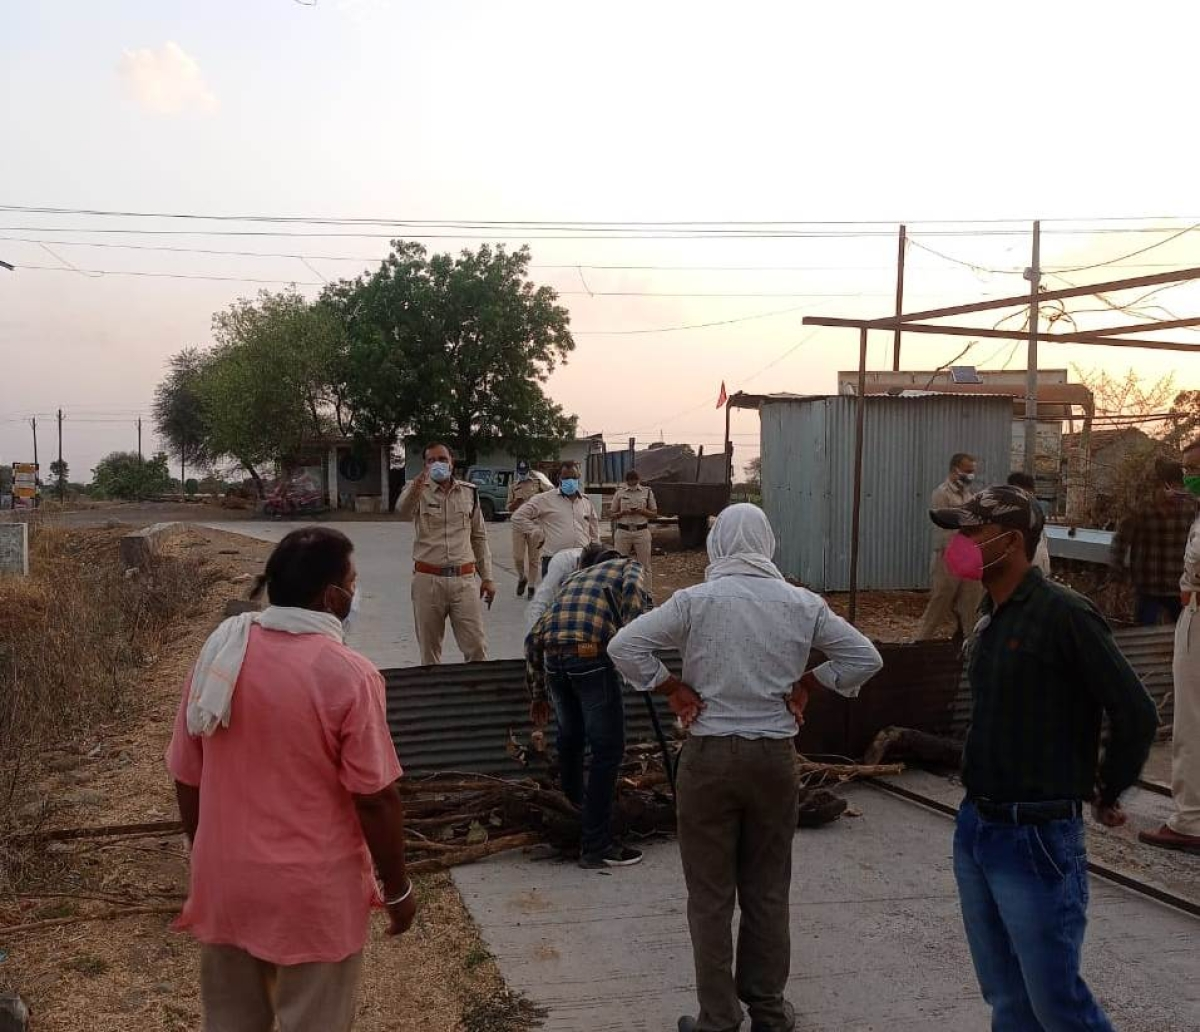 Madhya Pradesh: Villagers deny entry to outsiders, block roads in Mahidpur to prevent Covid spread